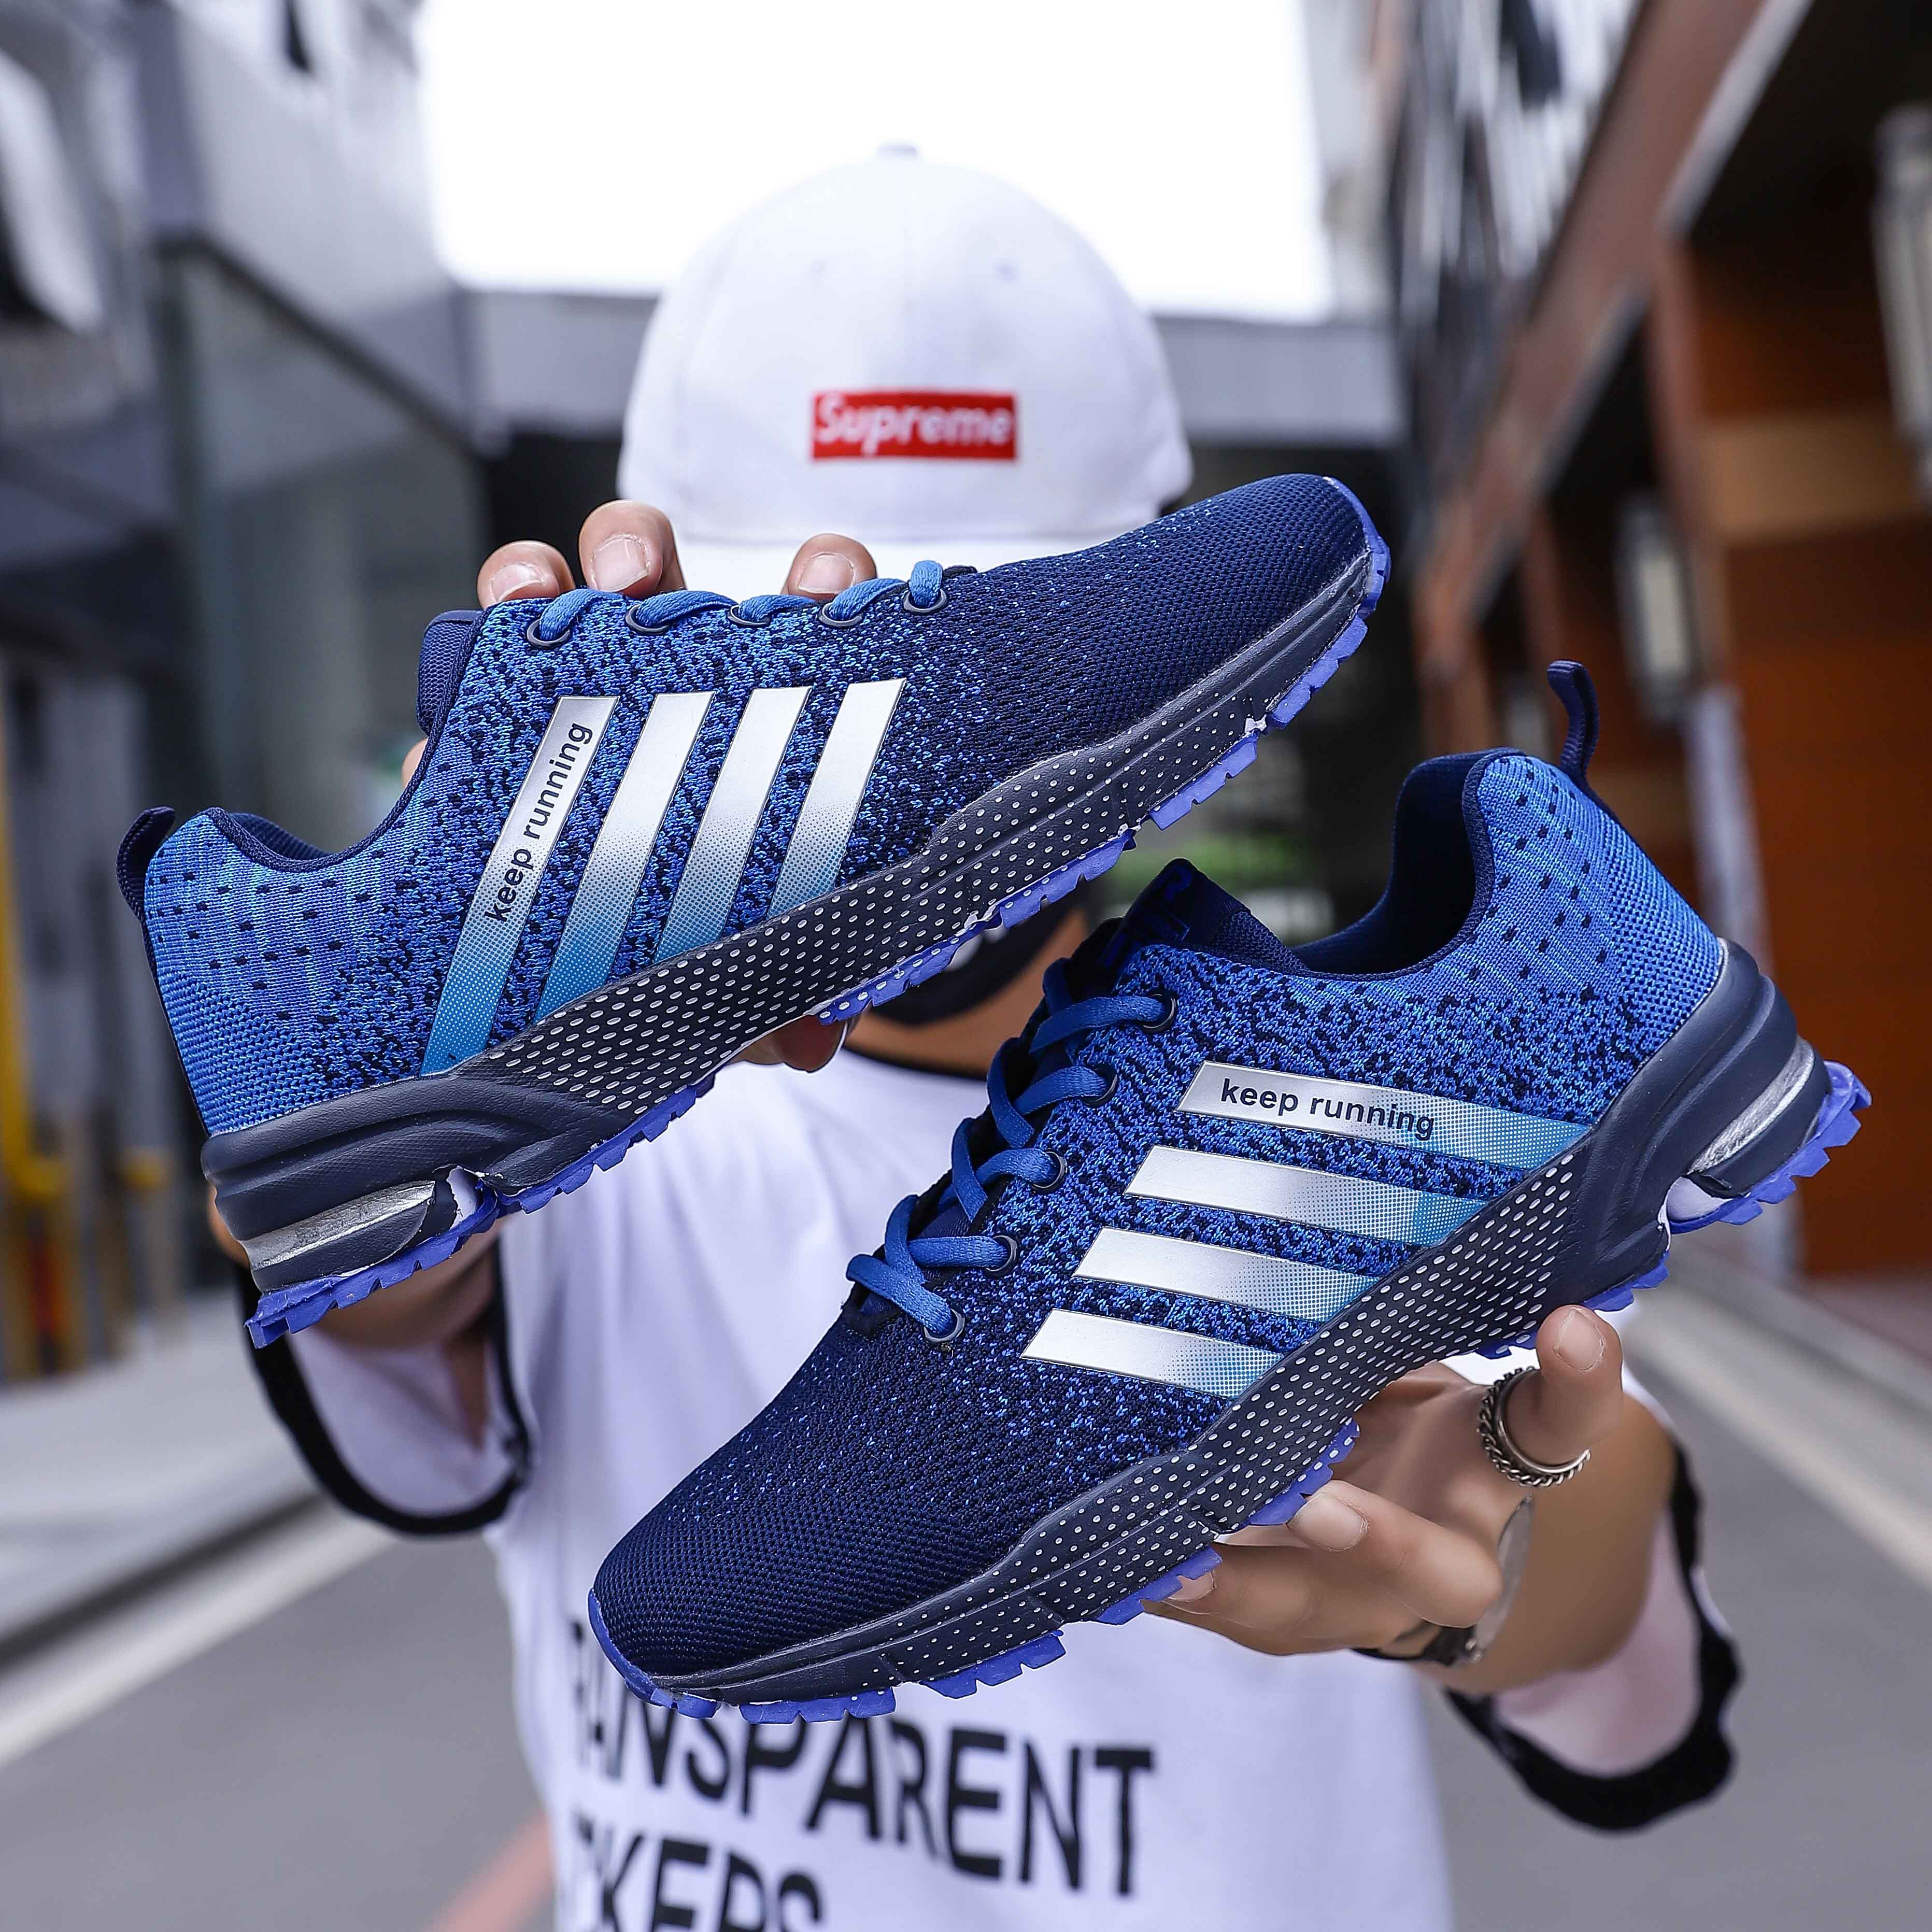 2020 Sneakers Men And Women Sneakers Lightweight Breathable Mesh Walking Shoes Soft Comfortable Casual Shoes Men Plus Size 35-47